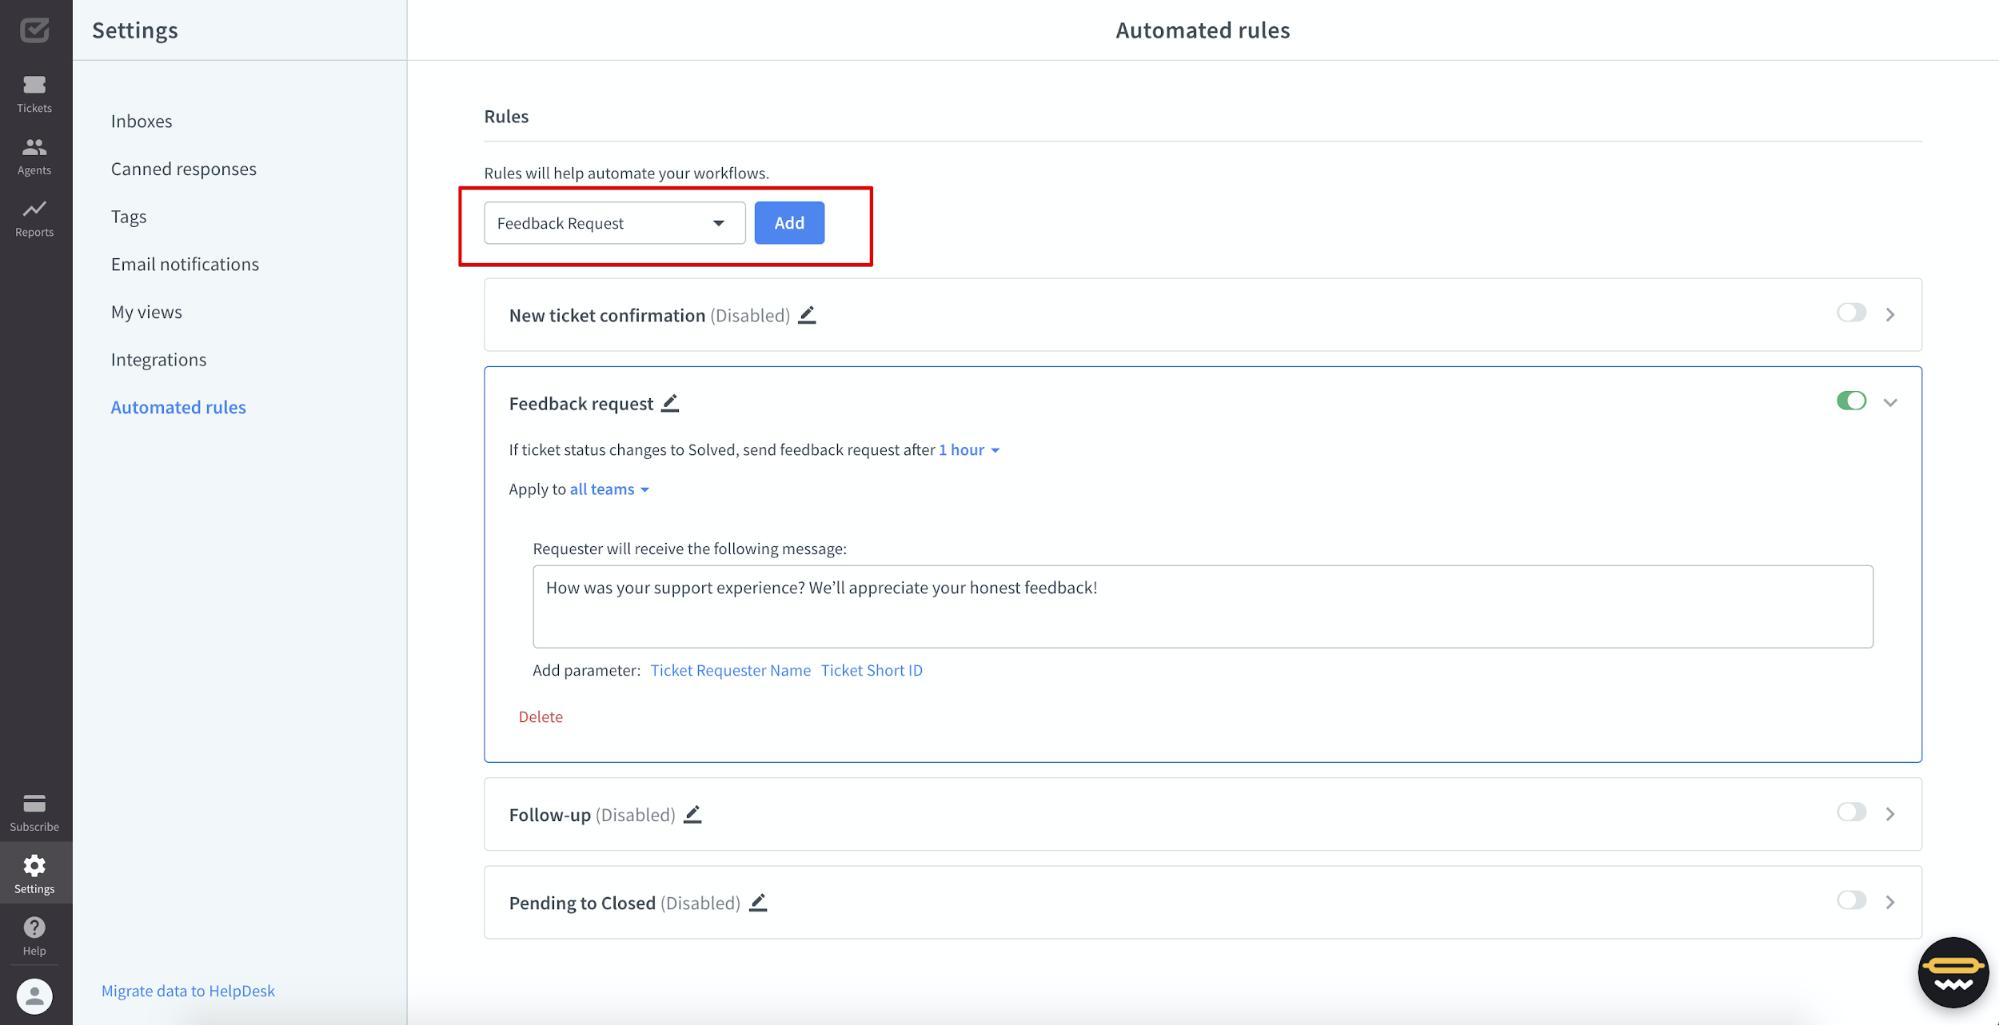 Automated rules view